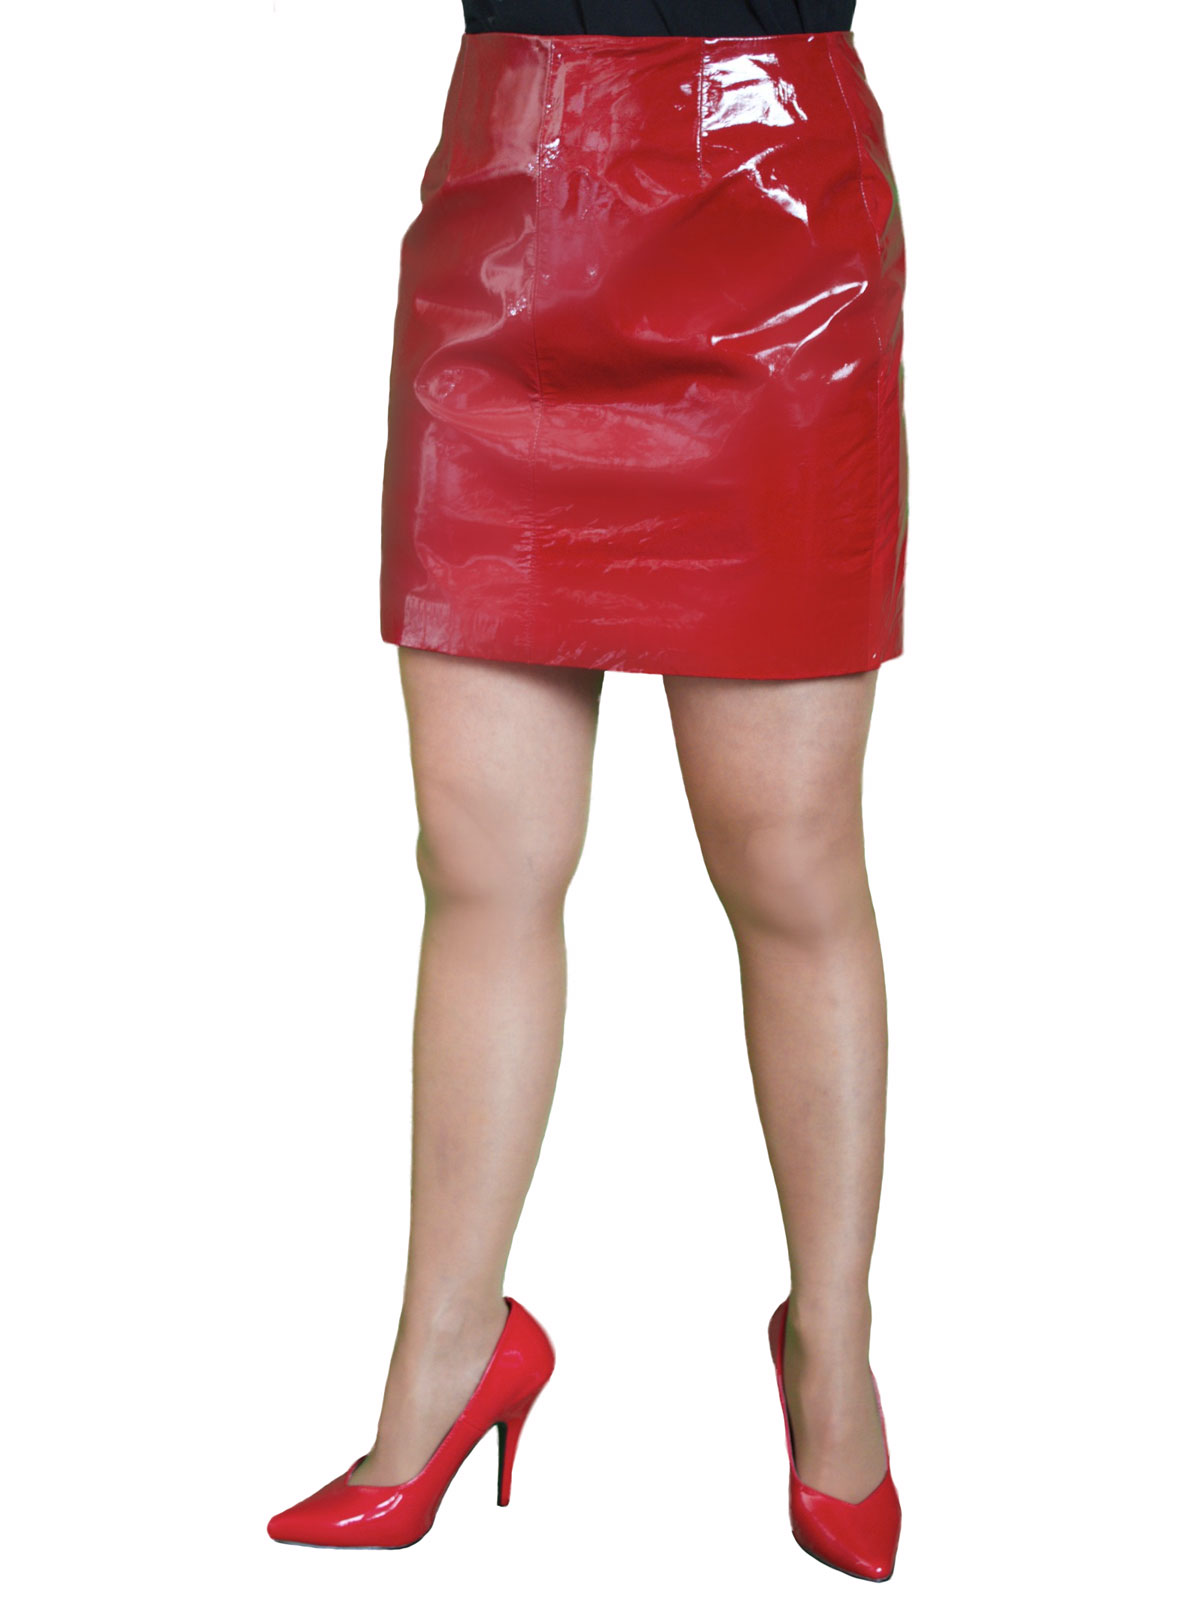 Patent Leather Mini Skirt (Red or White) - Tout Ensemble